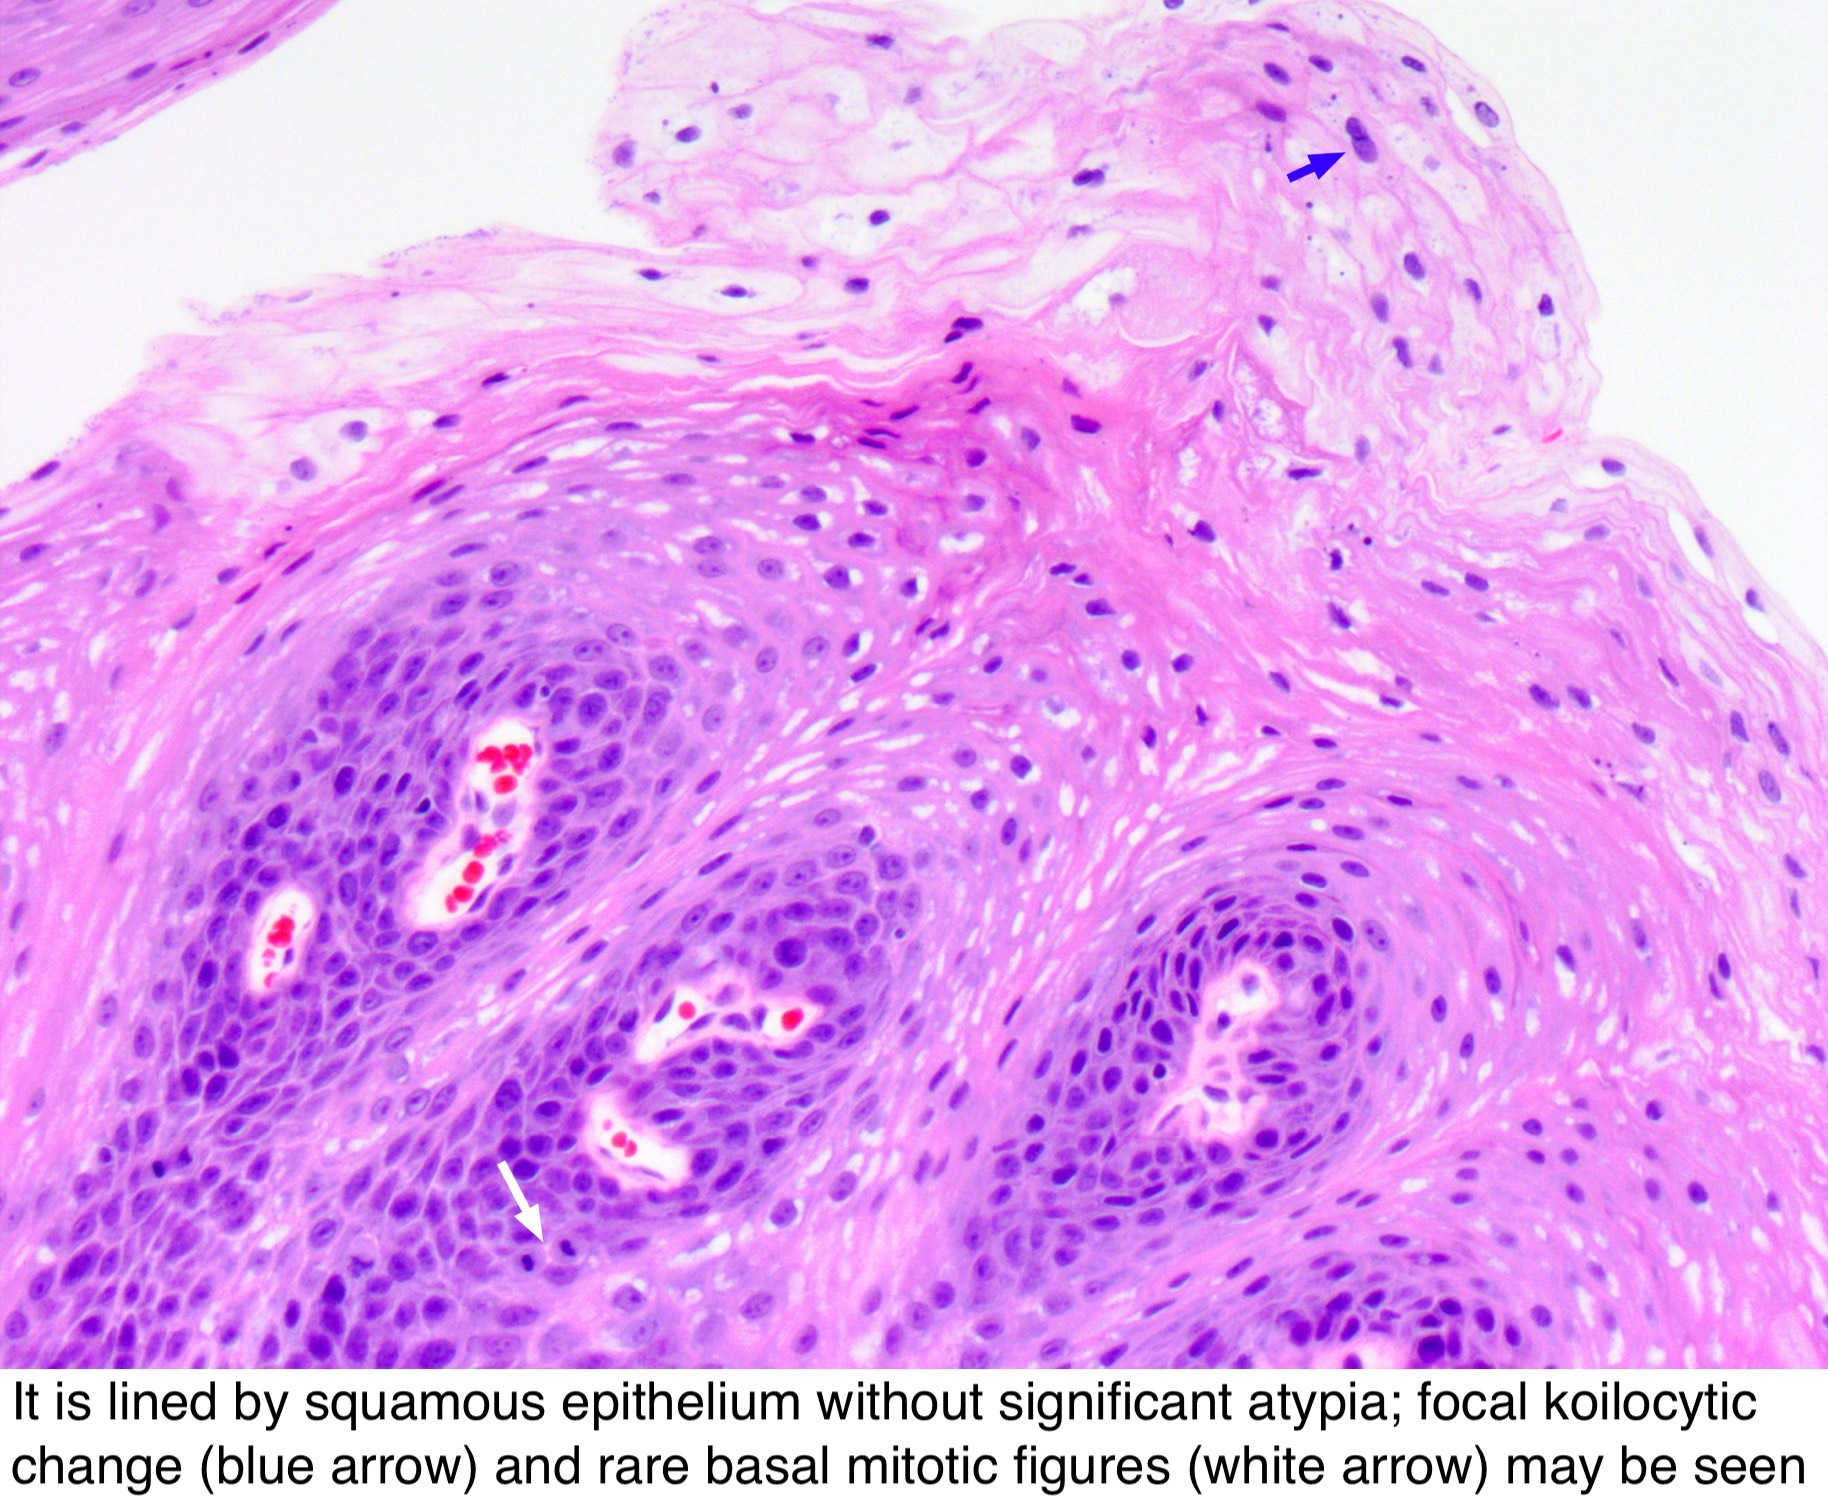 Oropharyngeal papilloma icd Papilloma icd 10 eyelid - Inflamed squamous papilloma icd 10